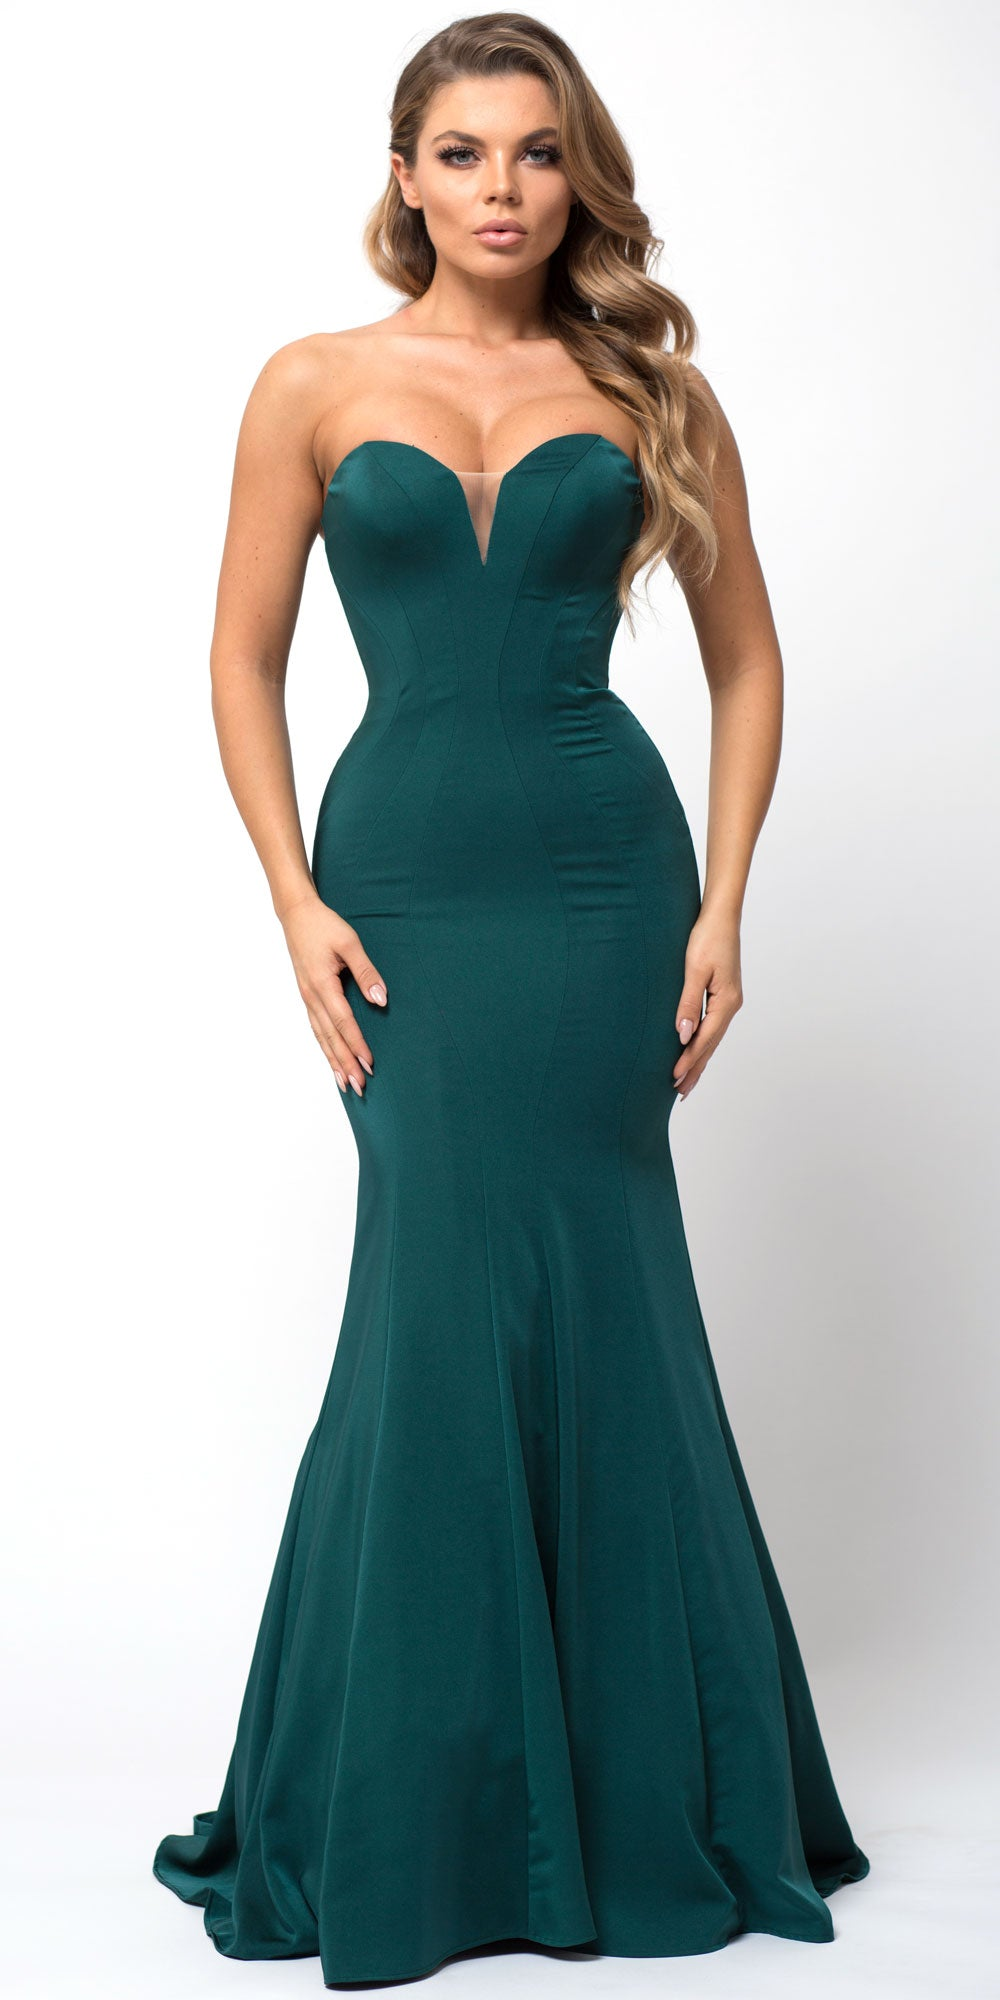 Image of Classic Strapless Mermaid Cut Fit-n-flare Long Prom Dress in Emerald Green